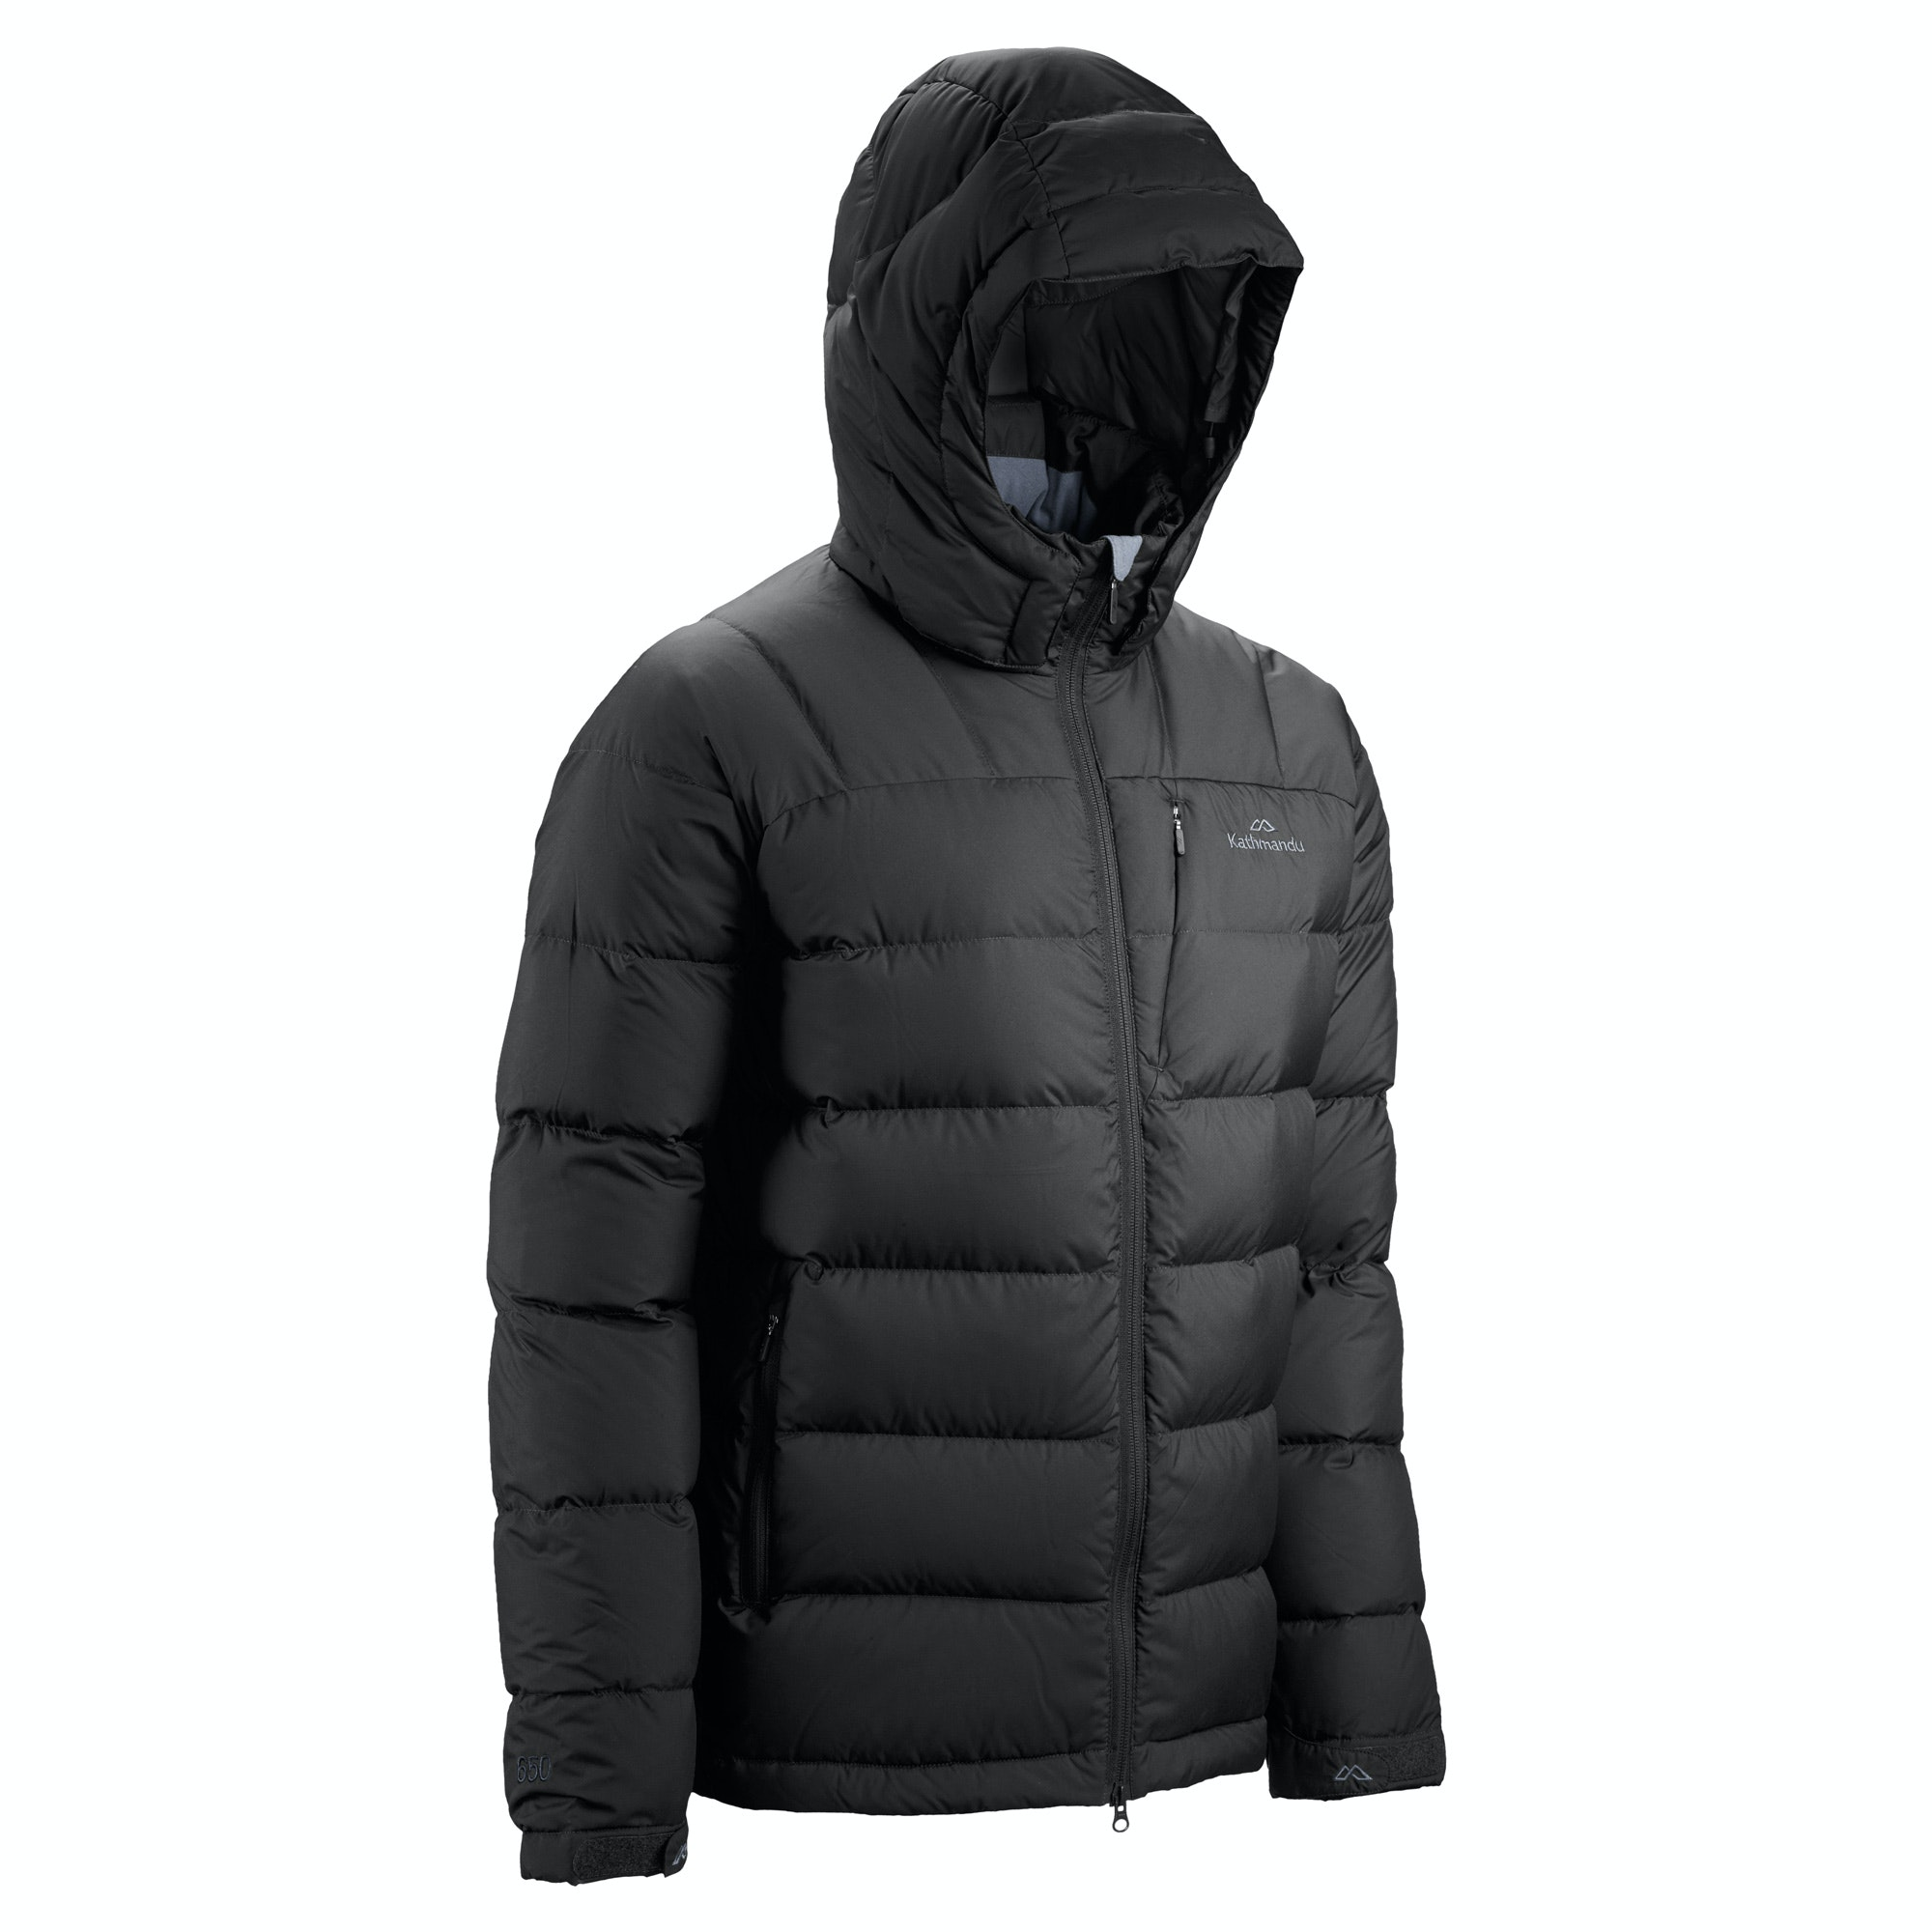 View more of the Men's Goose Down Hooded Jacket v5